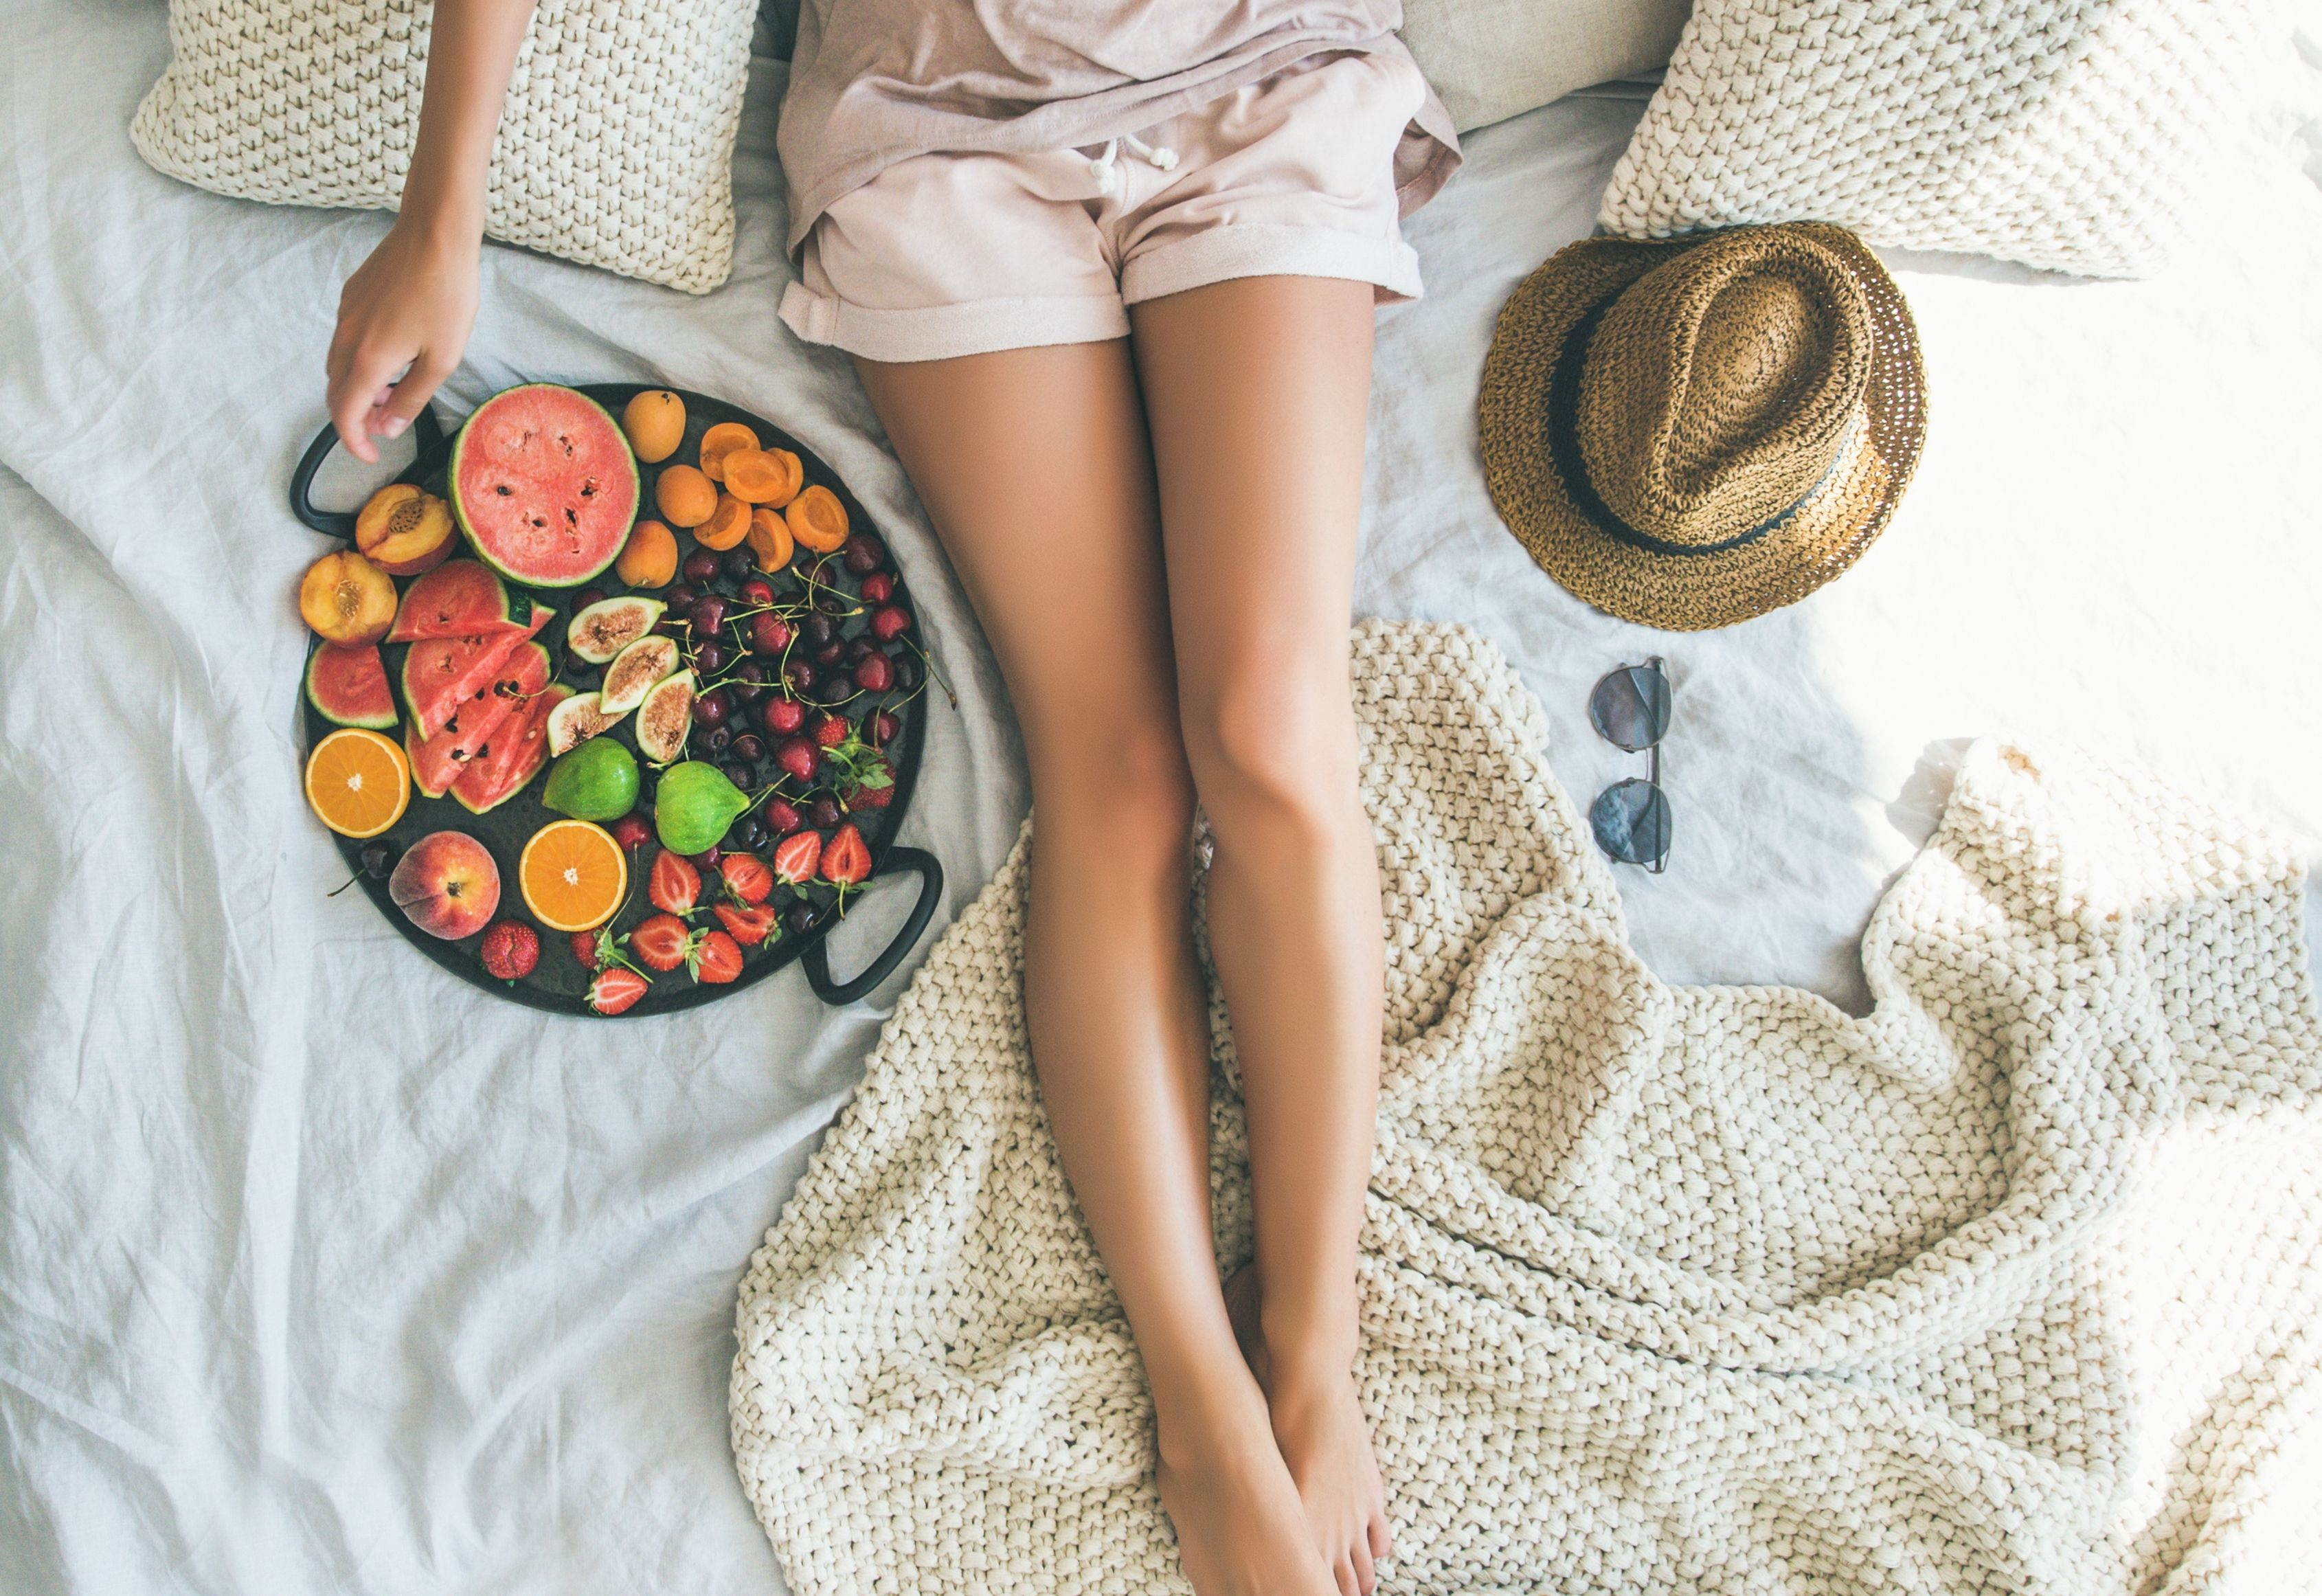 Starting a Clean Eating Diet? Read this first...